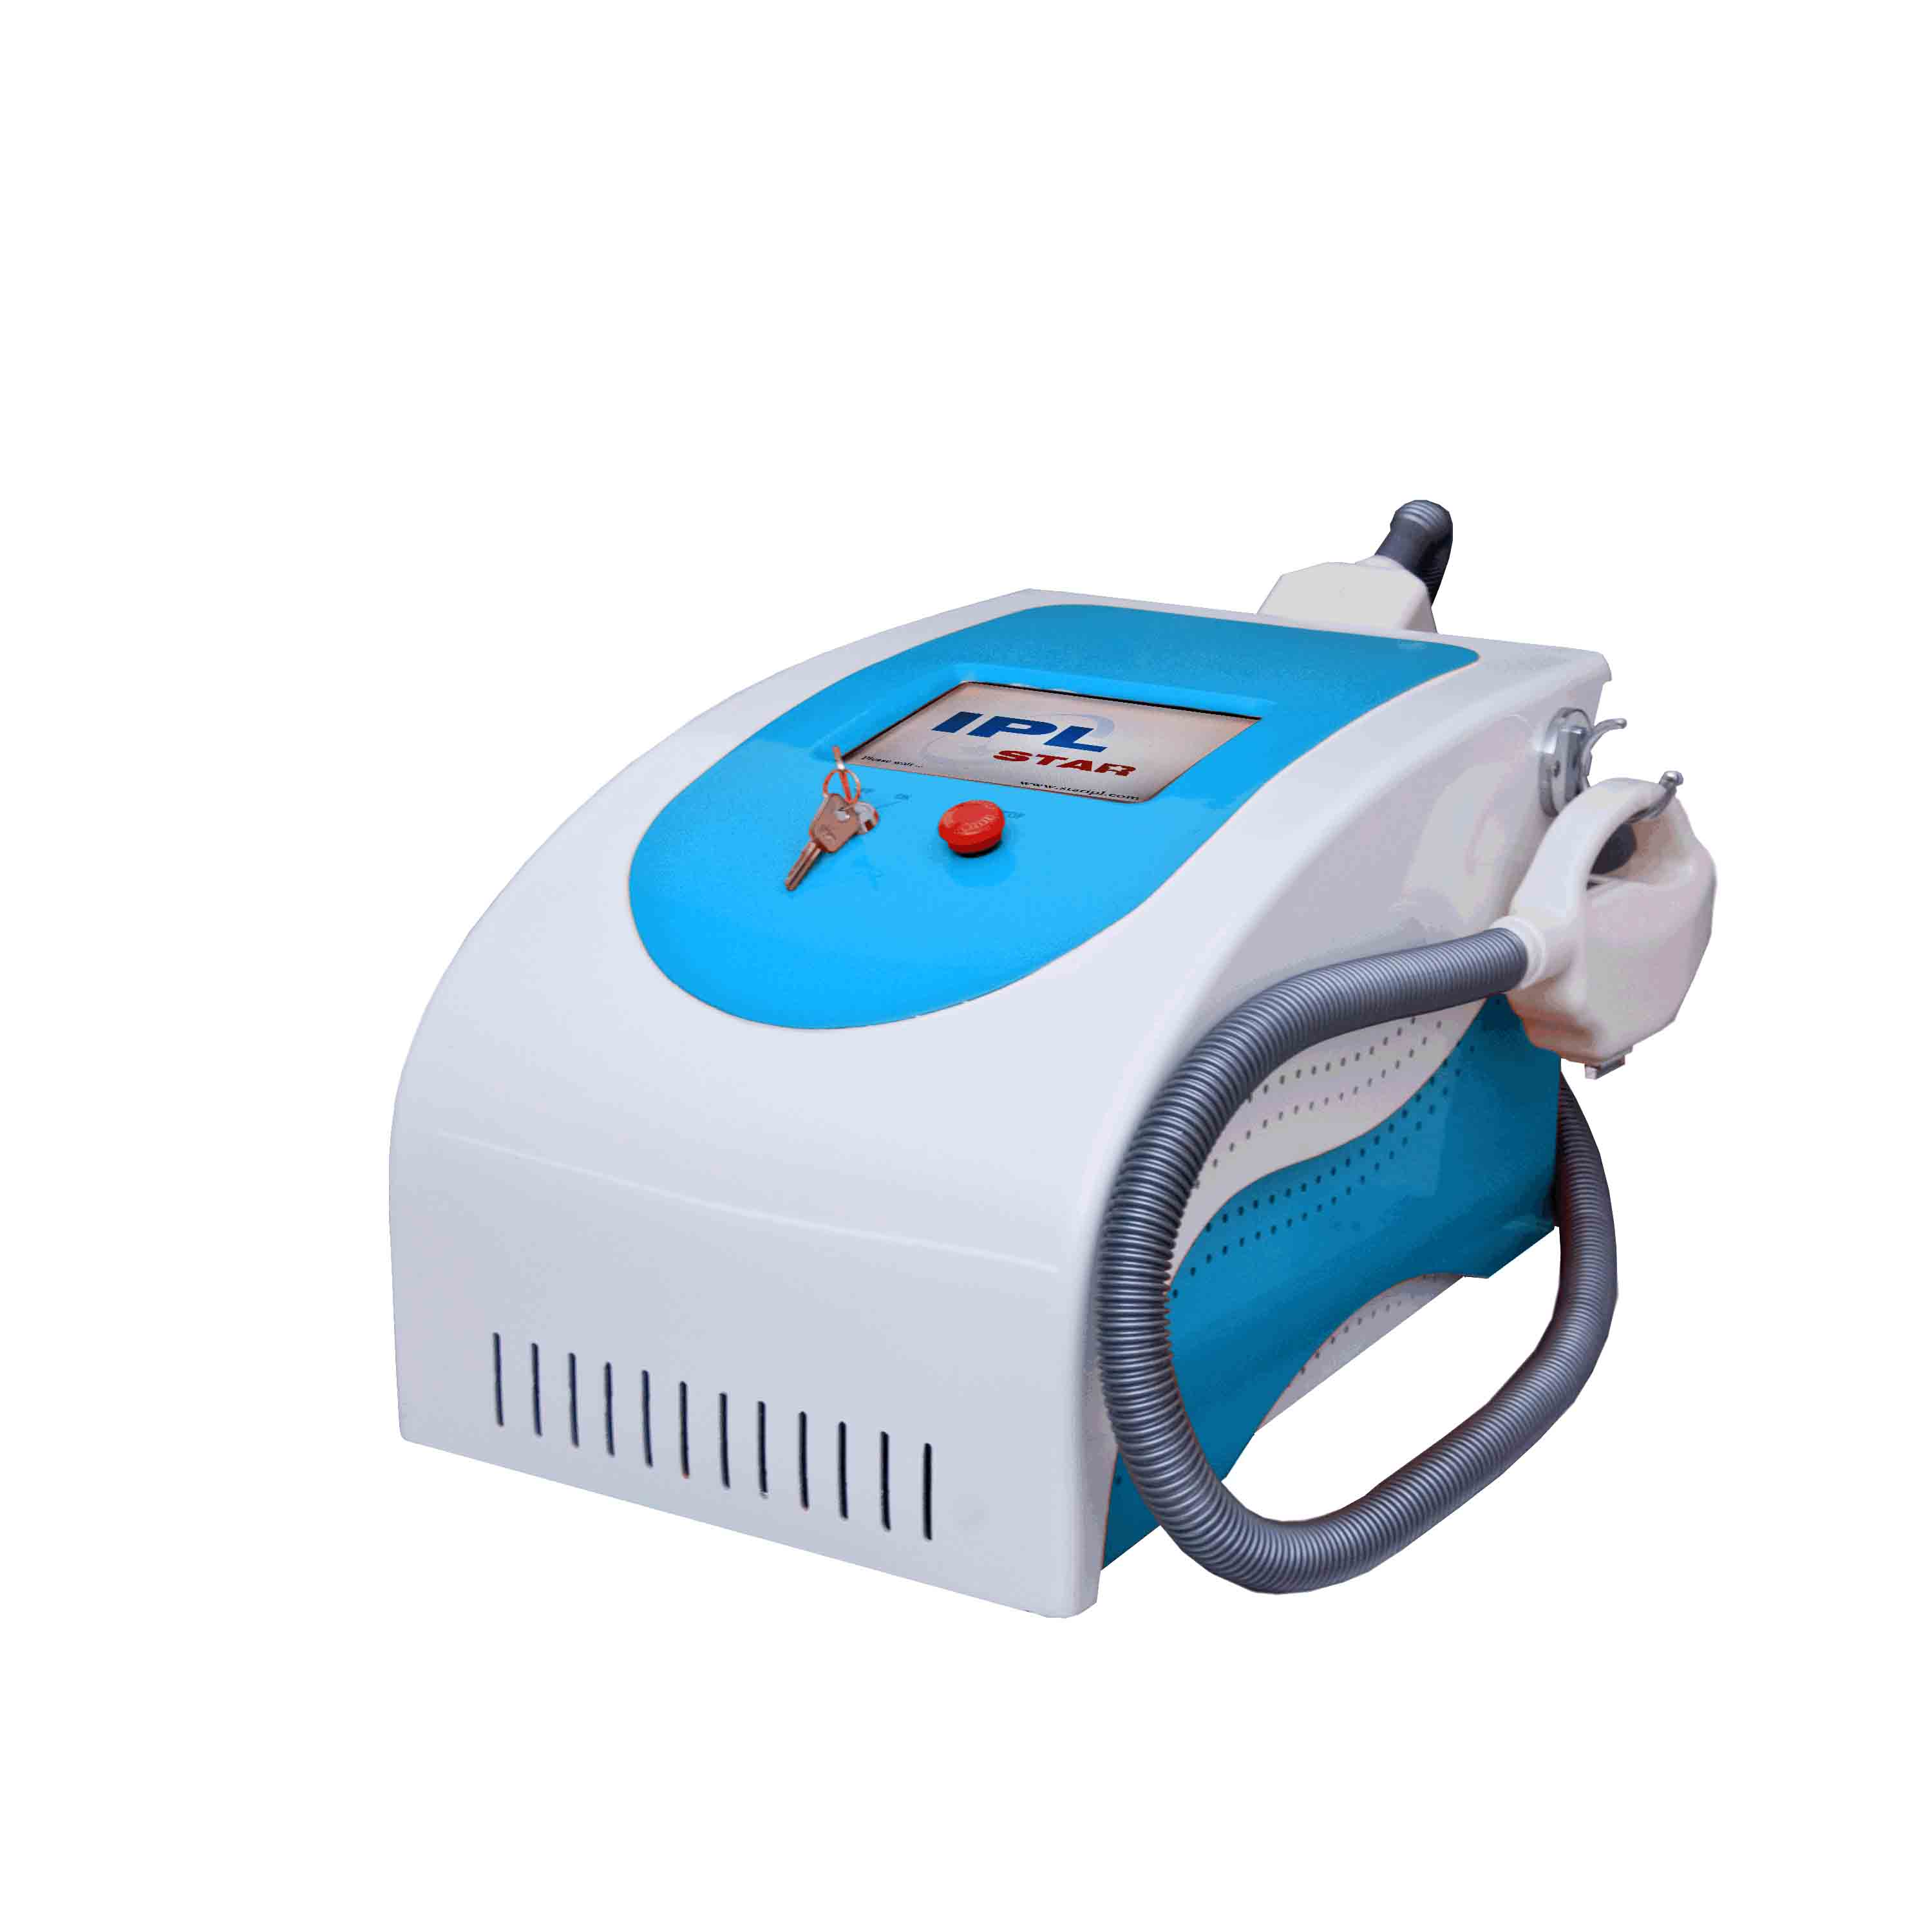 Portable IPL hair removal beauty equipment